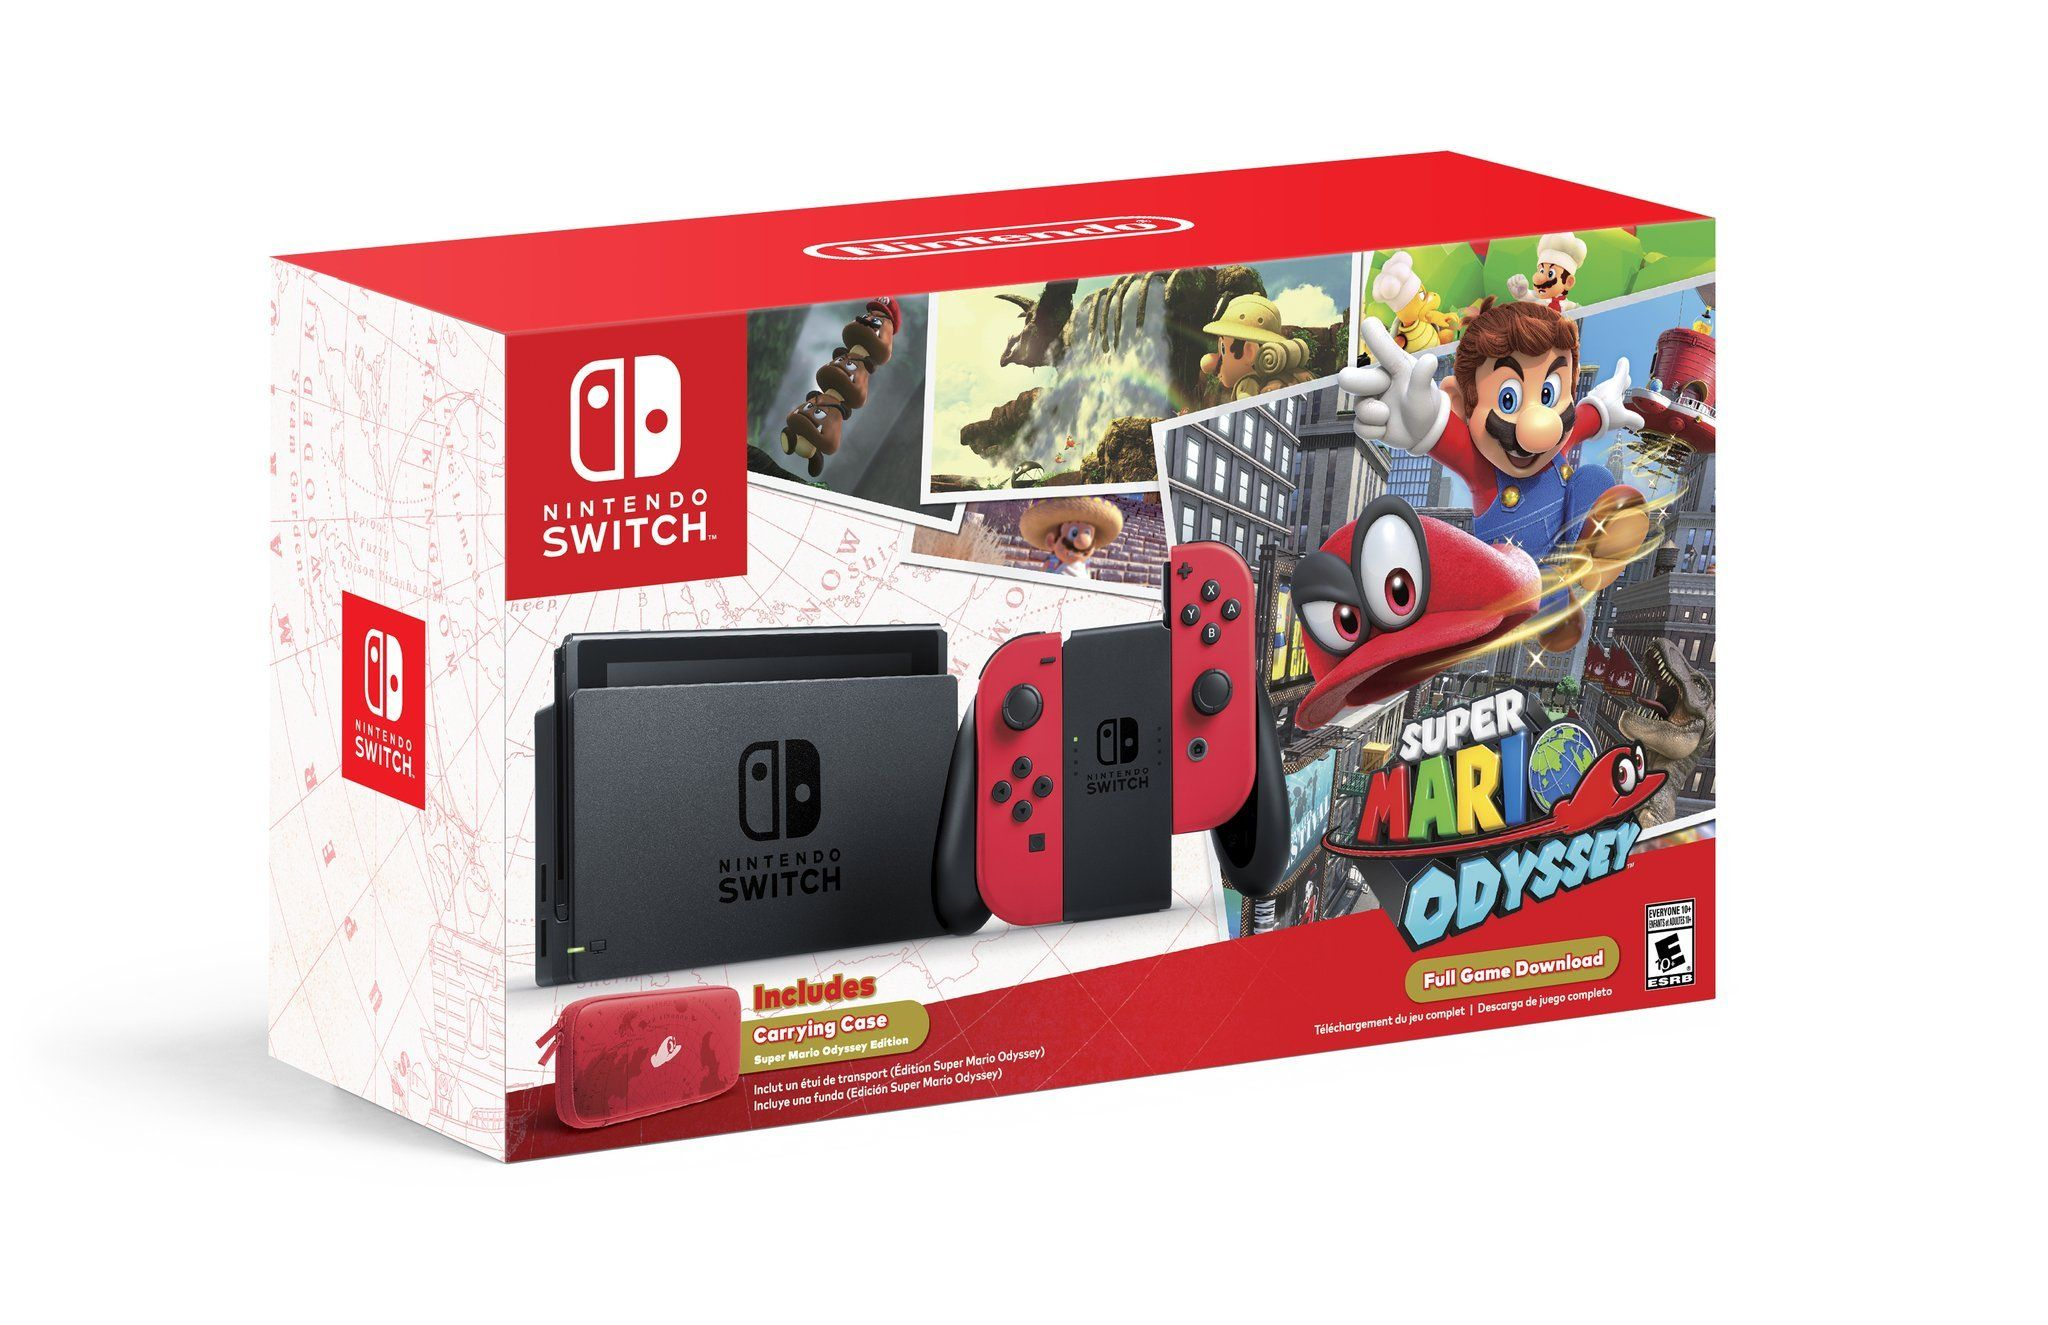 Super Mario Odyssey Gets A Nintendo Switch Bundle With Red Joy Cons Splatoon2 Hard Case Ink X Squid Hori Carrying